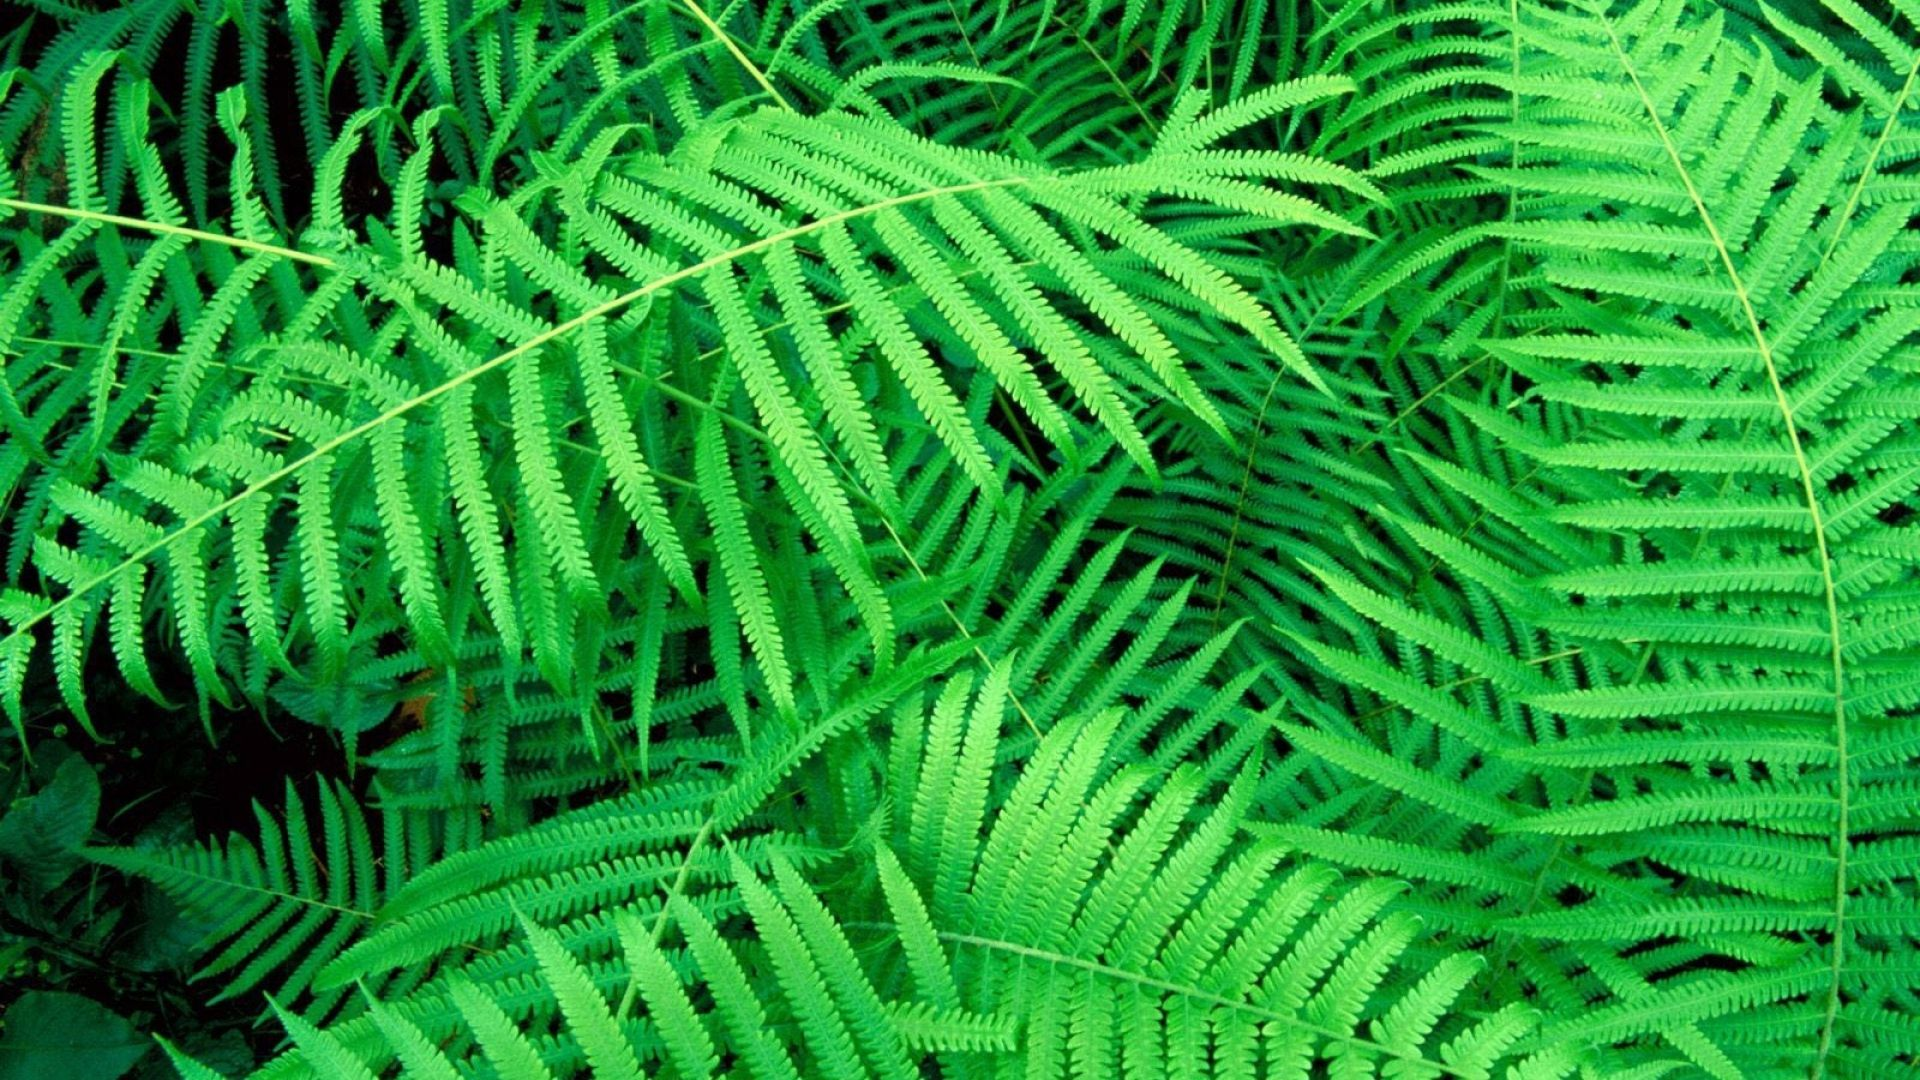 Fern download nice wallpaper